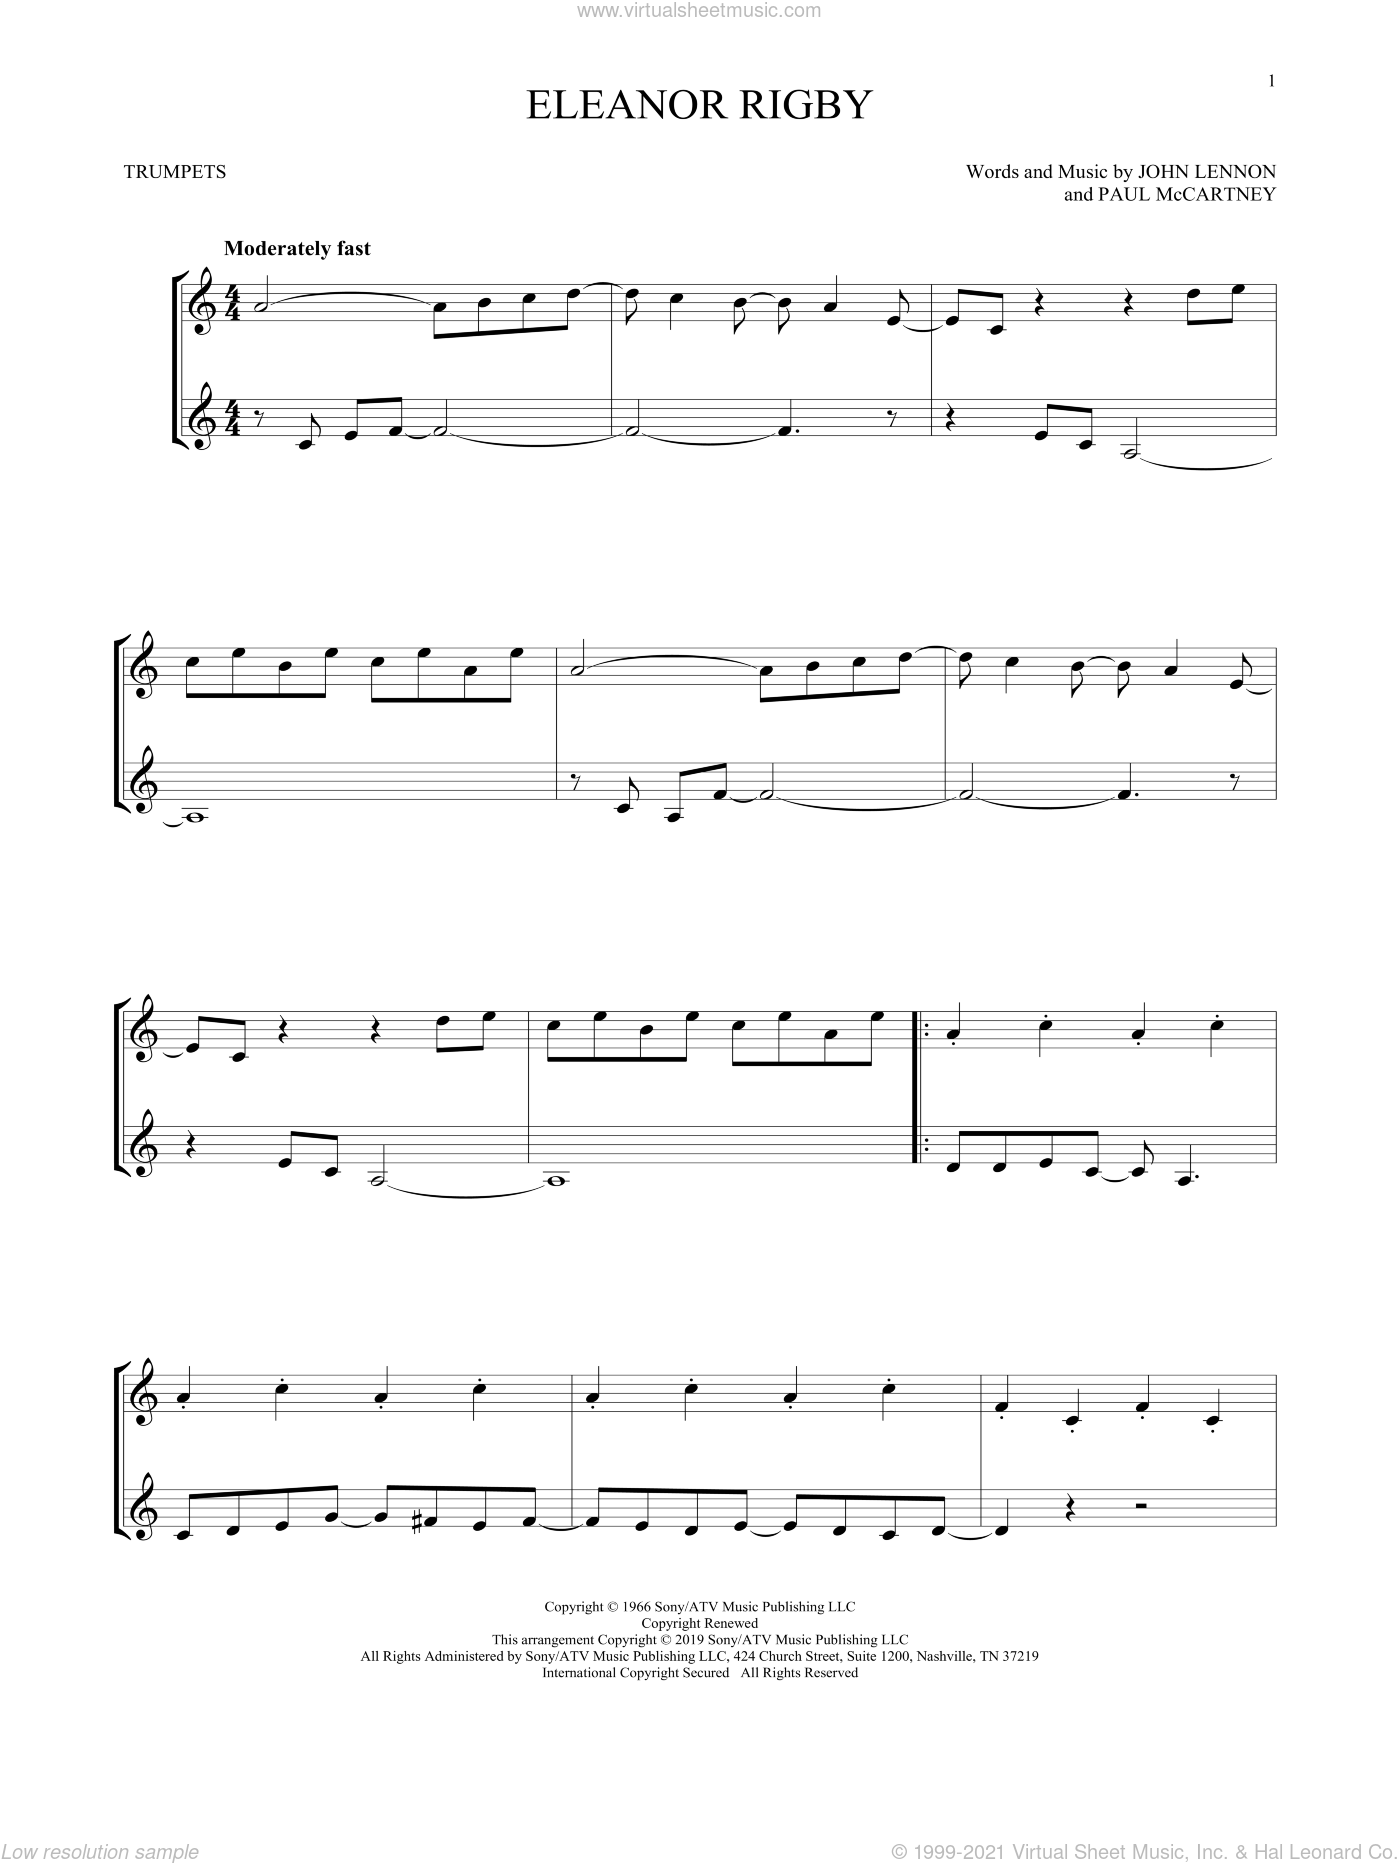 Eleanor Rigby sheet music for two trumpets (duet, duets) by The Beatles, John Lennon and Paul McCartney, intermediate skill level